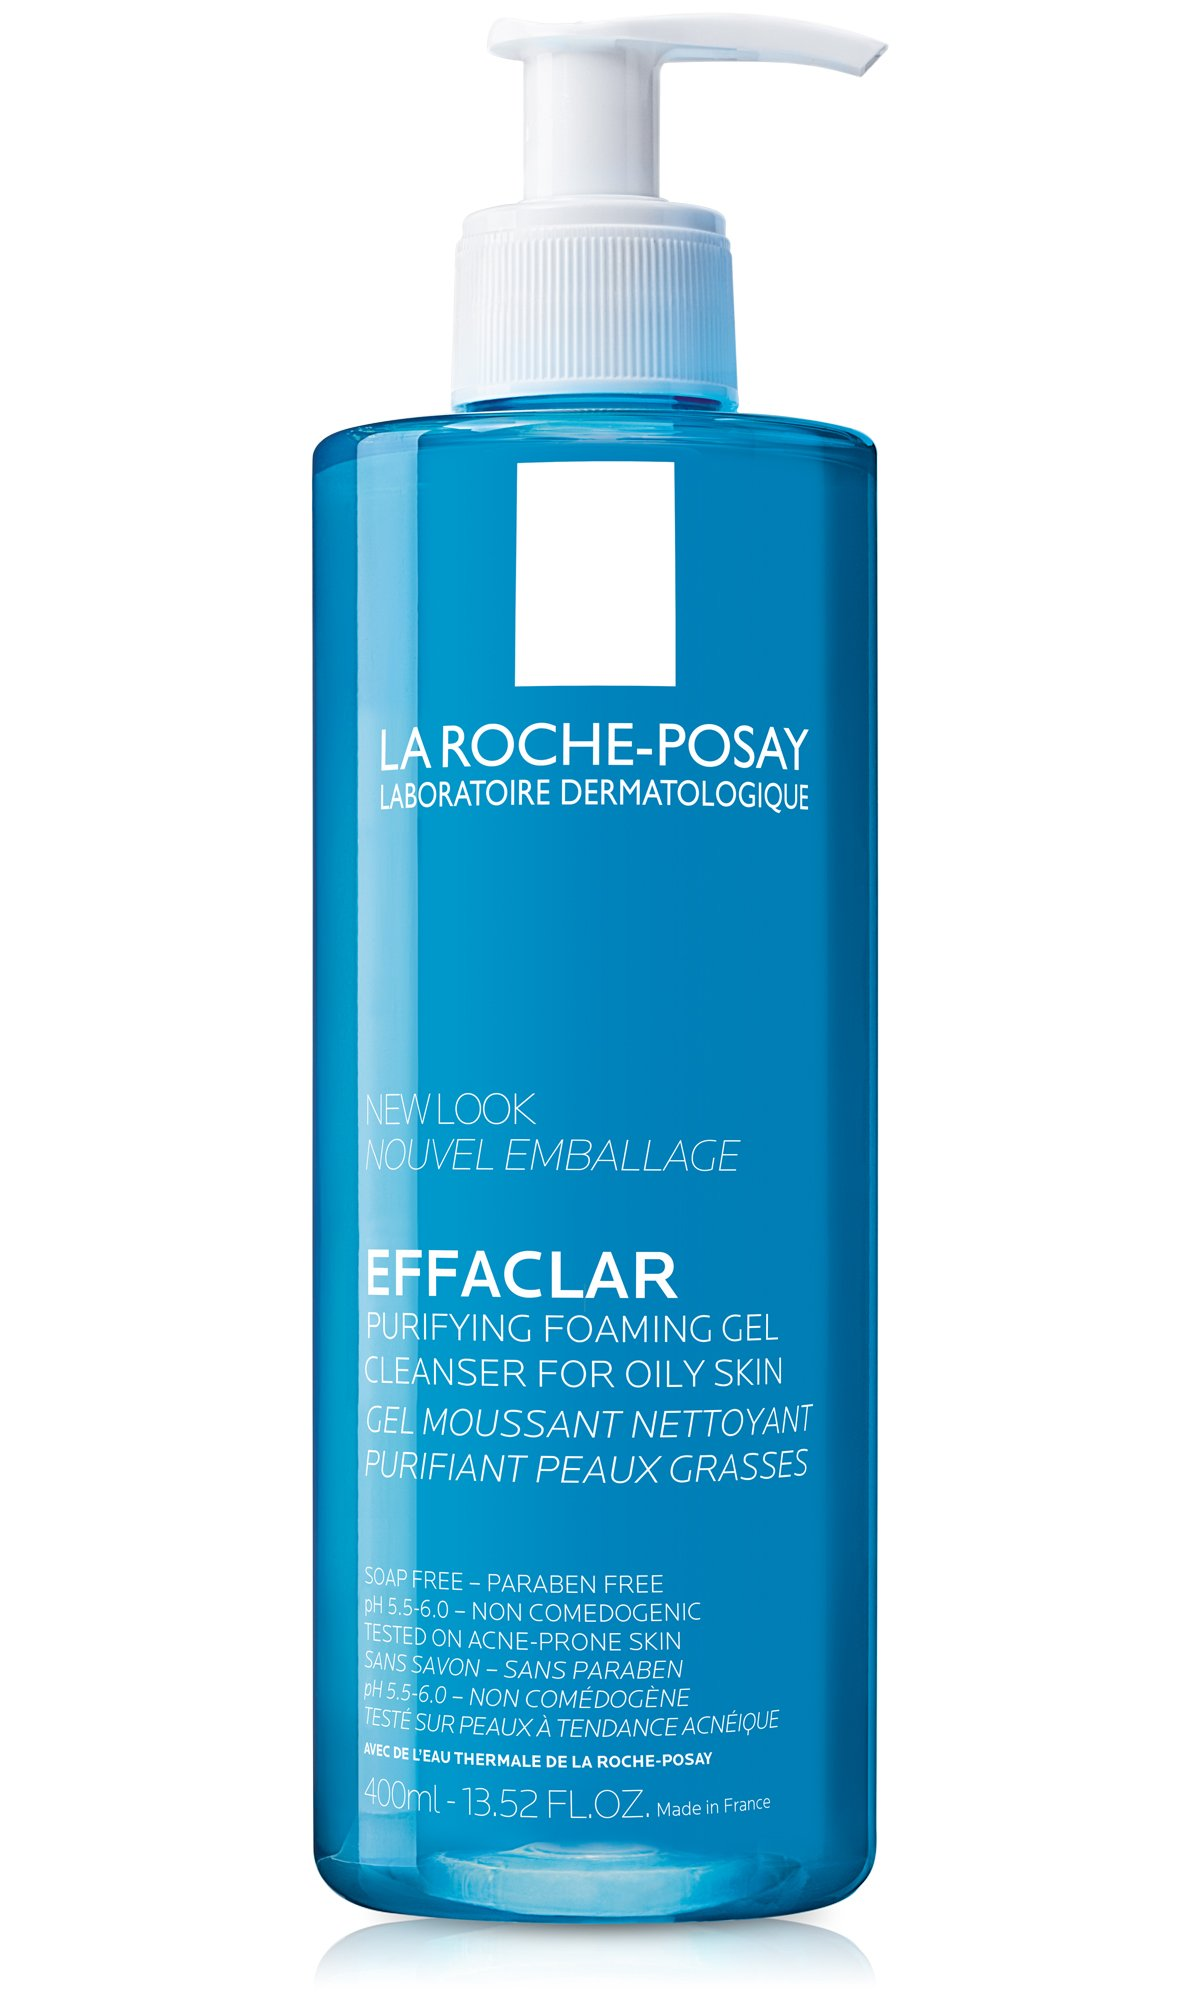 La Roche-Posay Effaclar Purifying Foaming Gel Cleanser for Oily Skin, 13.52 Fl. Oz. by La Roche-Posay